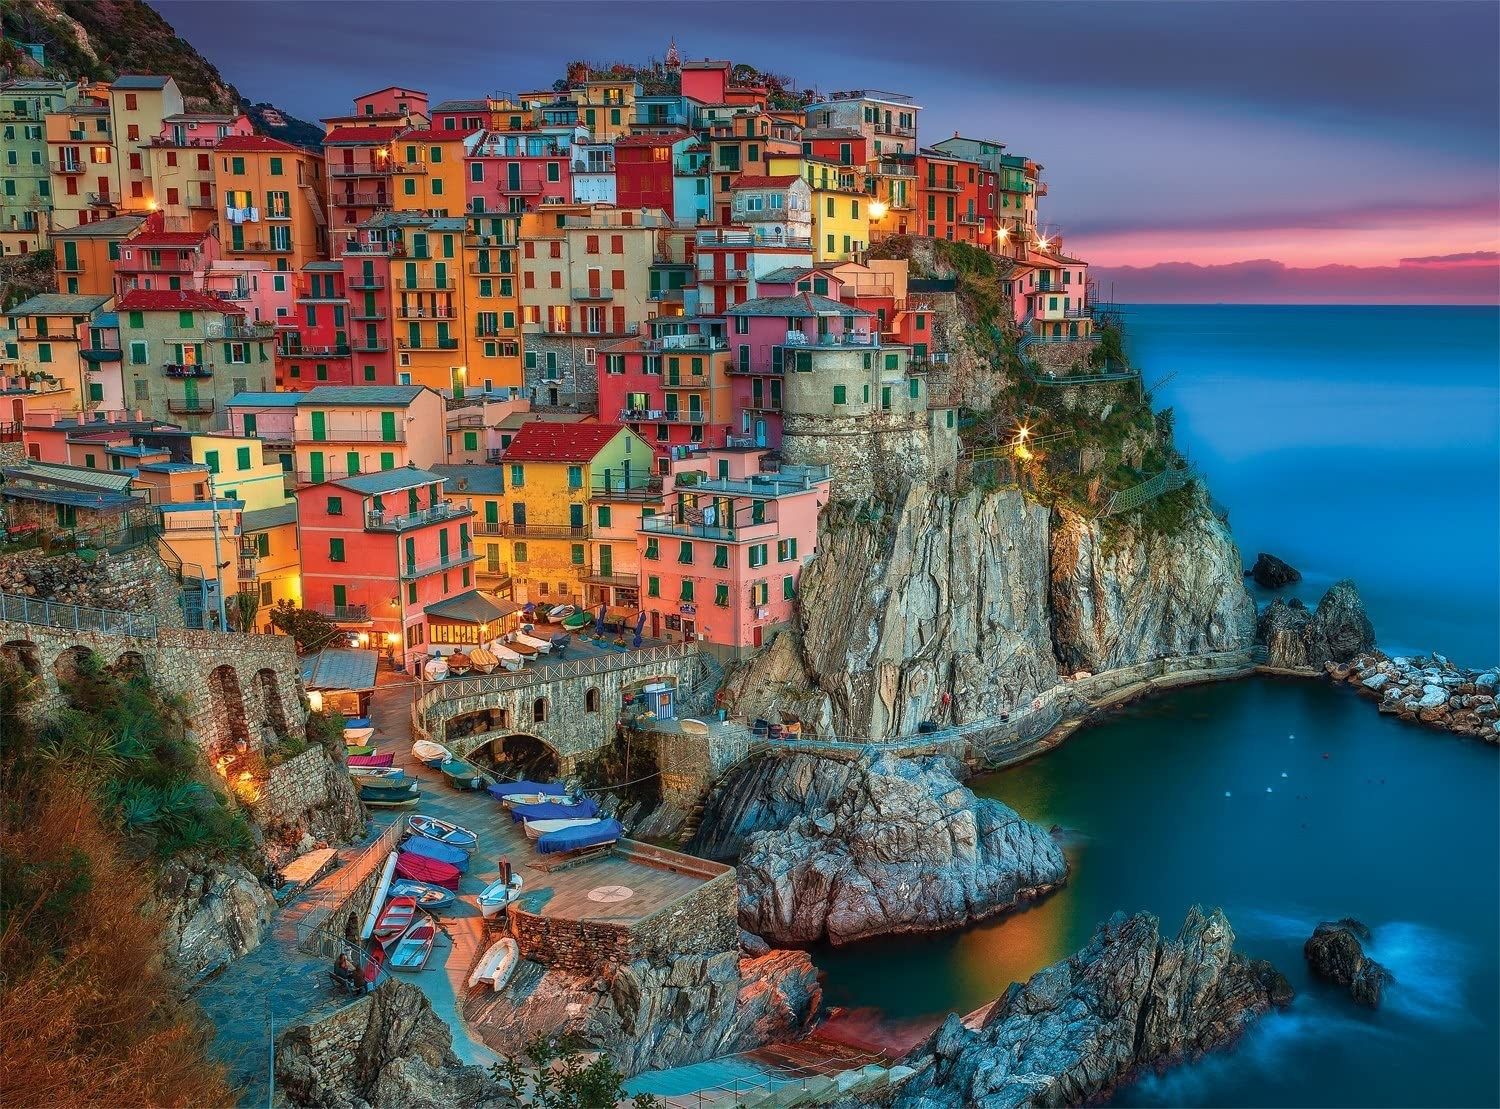 The colourful 1,000-piece puzzle of a cliff-side village